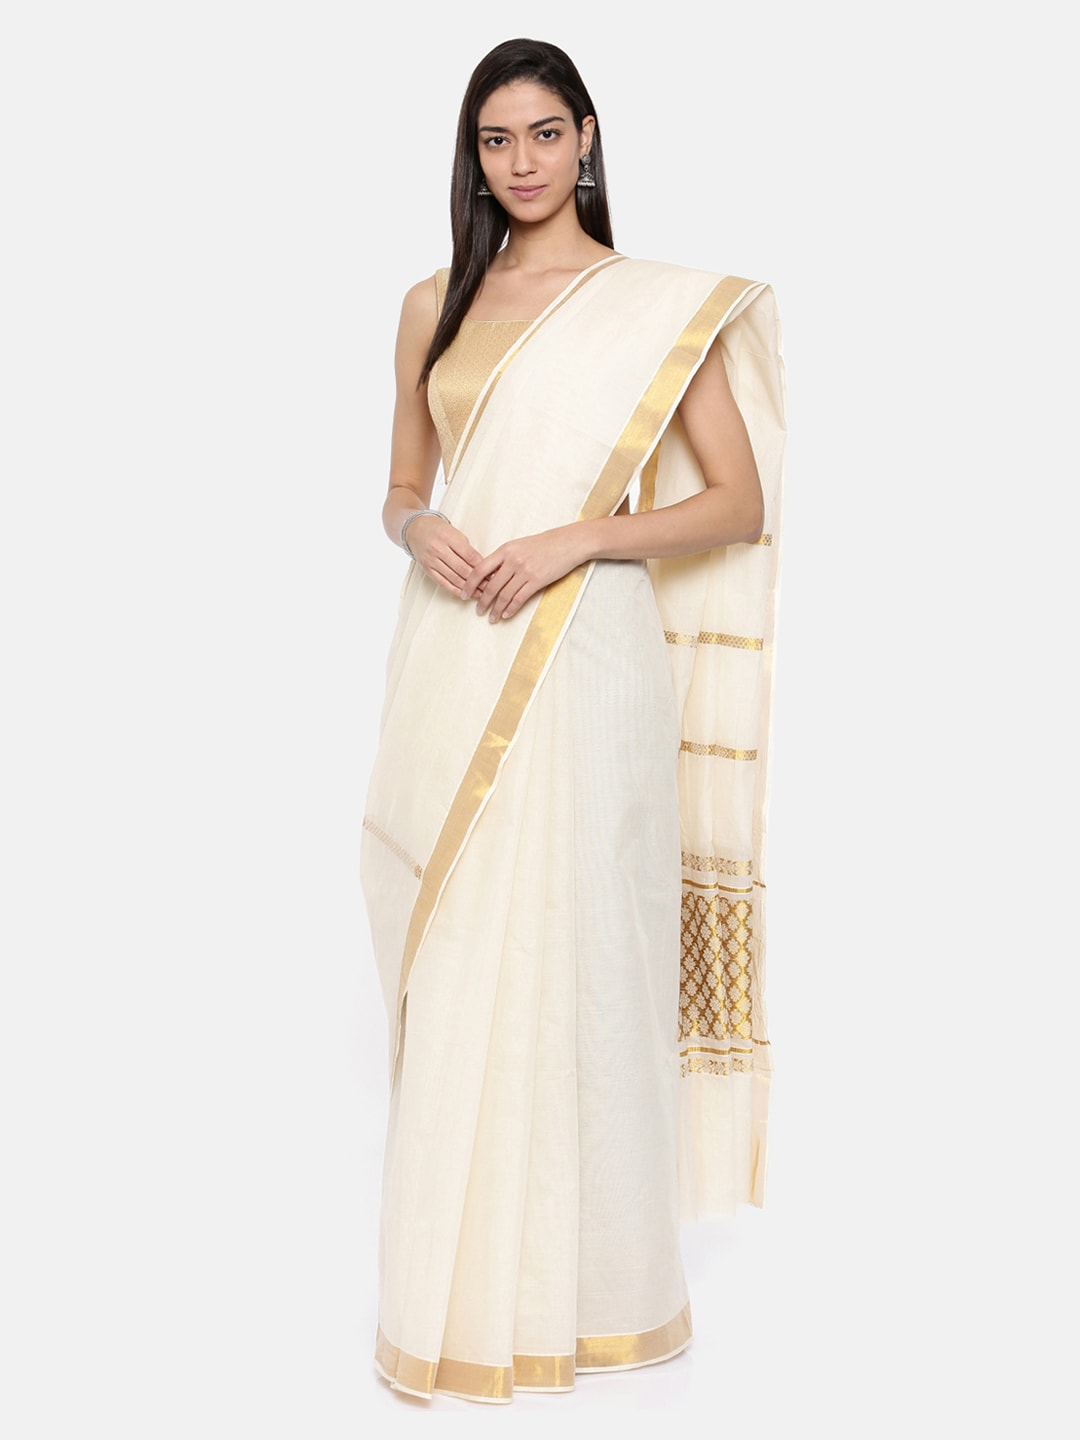 d4a3a87fb8826 White Sarees Sarees Blouse - Buy White Sarees Sarees Blouse online in India